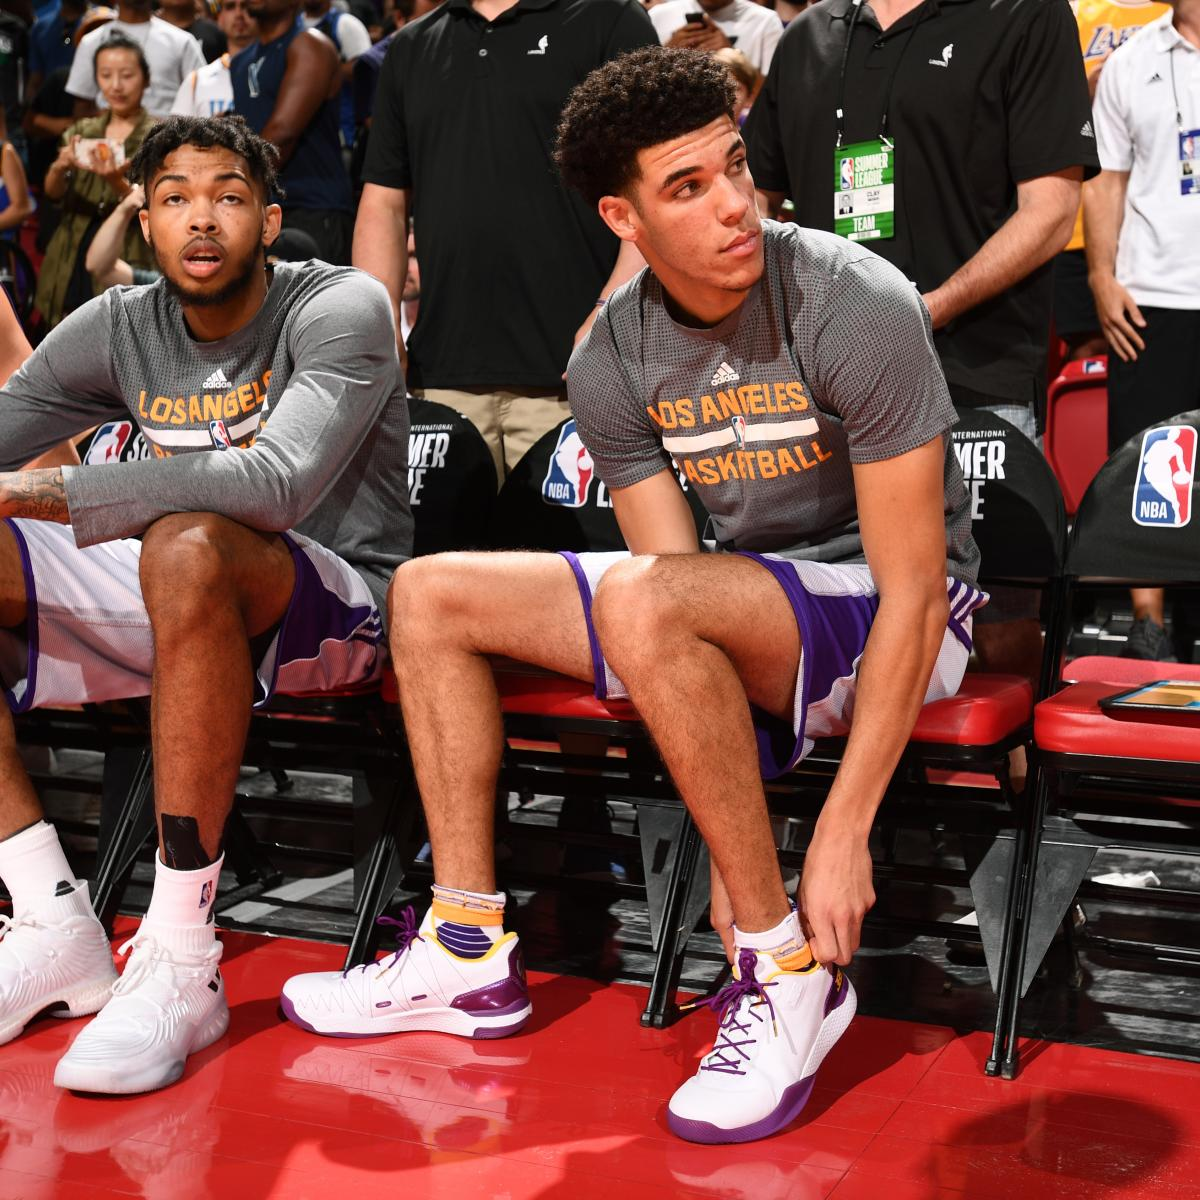 Lakers News: Latest on Lonzo Ball, Brandon Ingram's Injuries and Recoveries